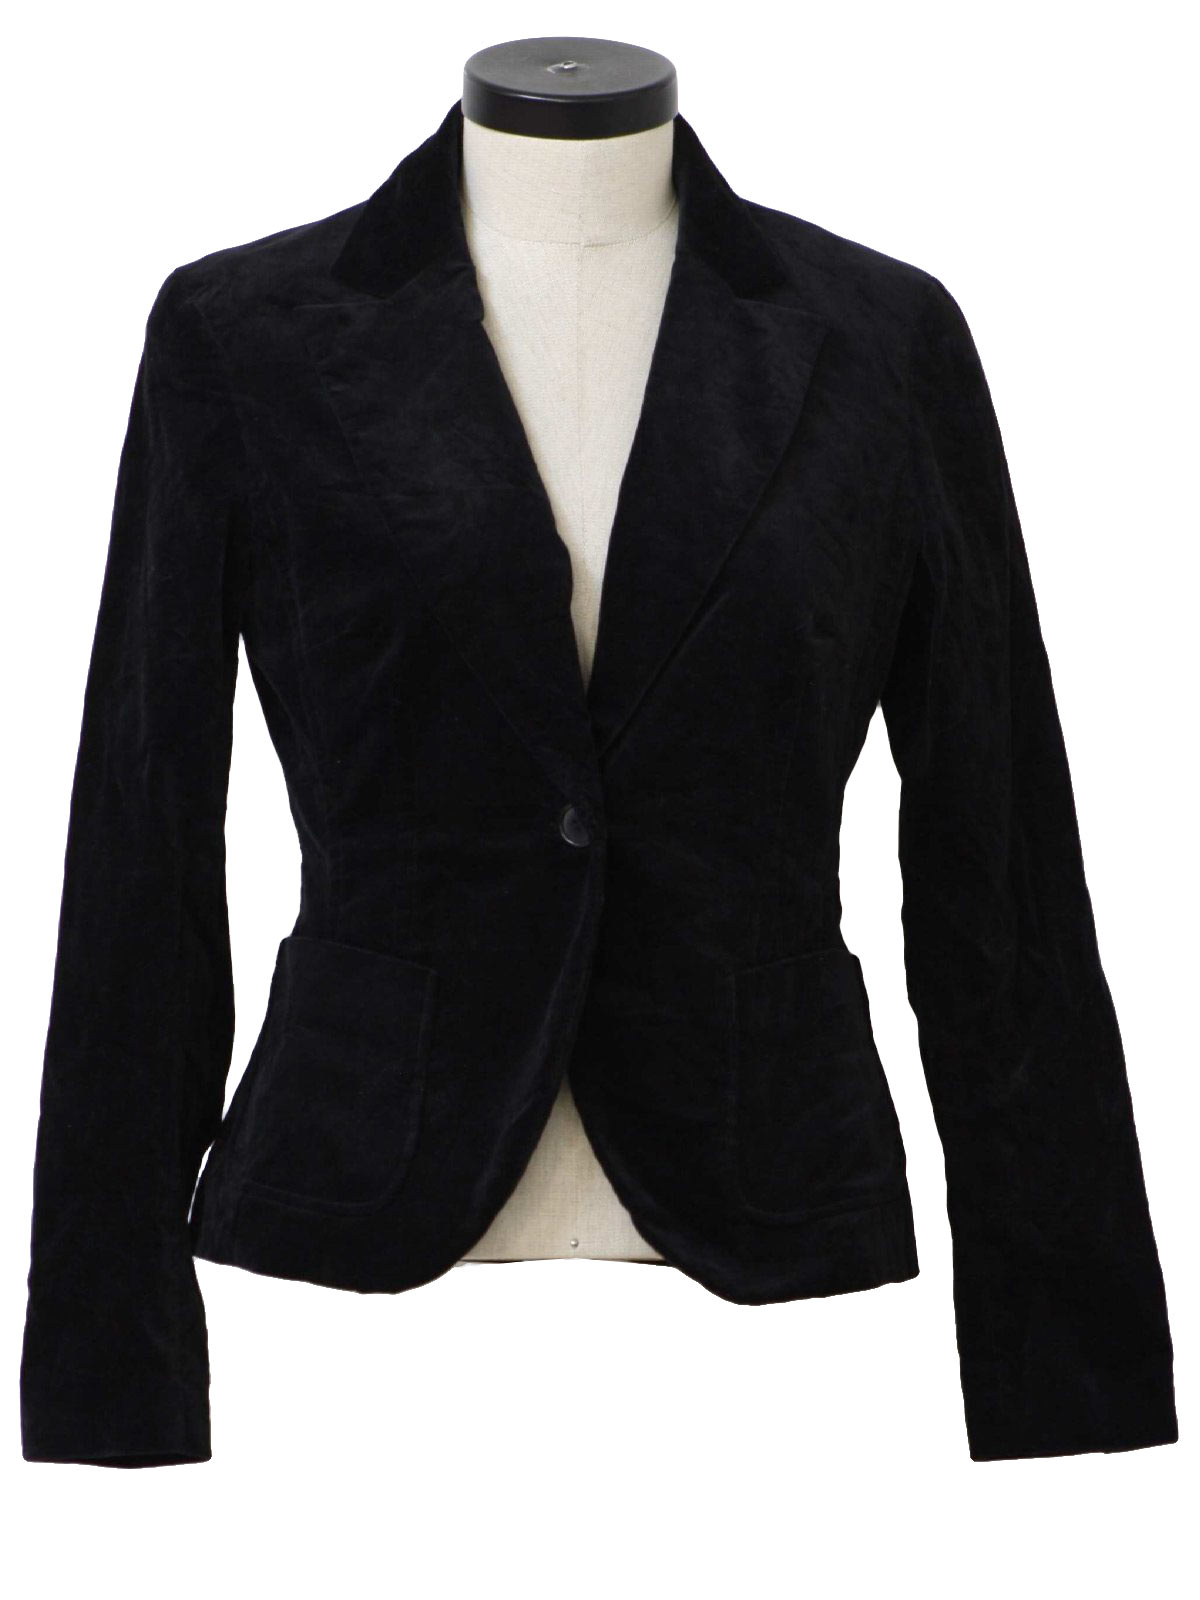 Find great deals on eBay for black womens blazer. Shop with confidence.